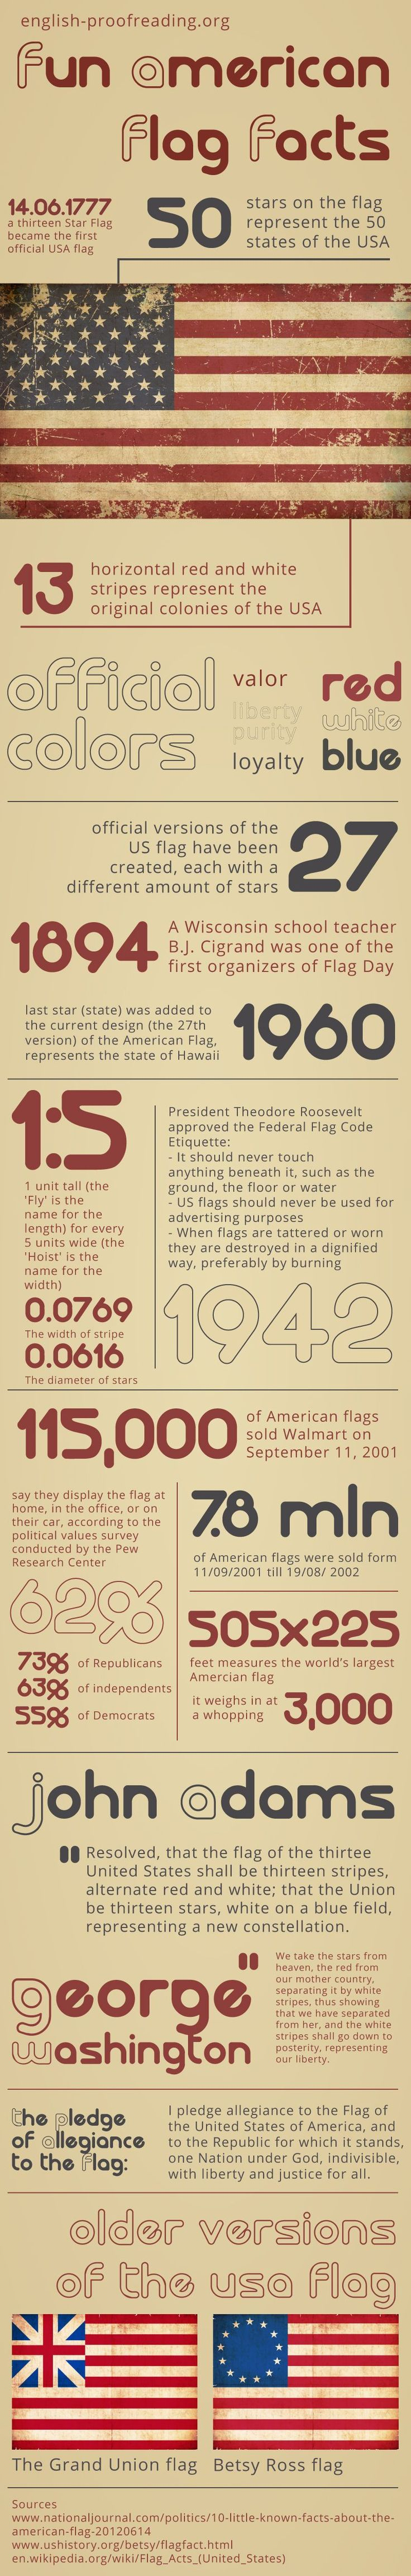 Fun Flag Day Trivia #infographic #America #Flag #Facts